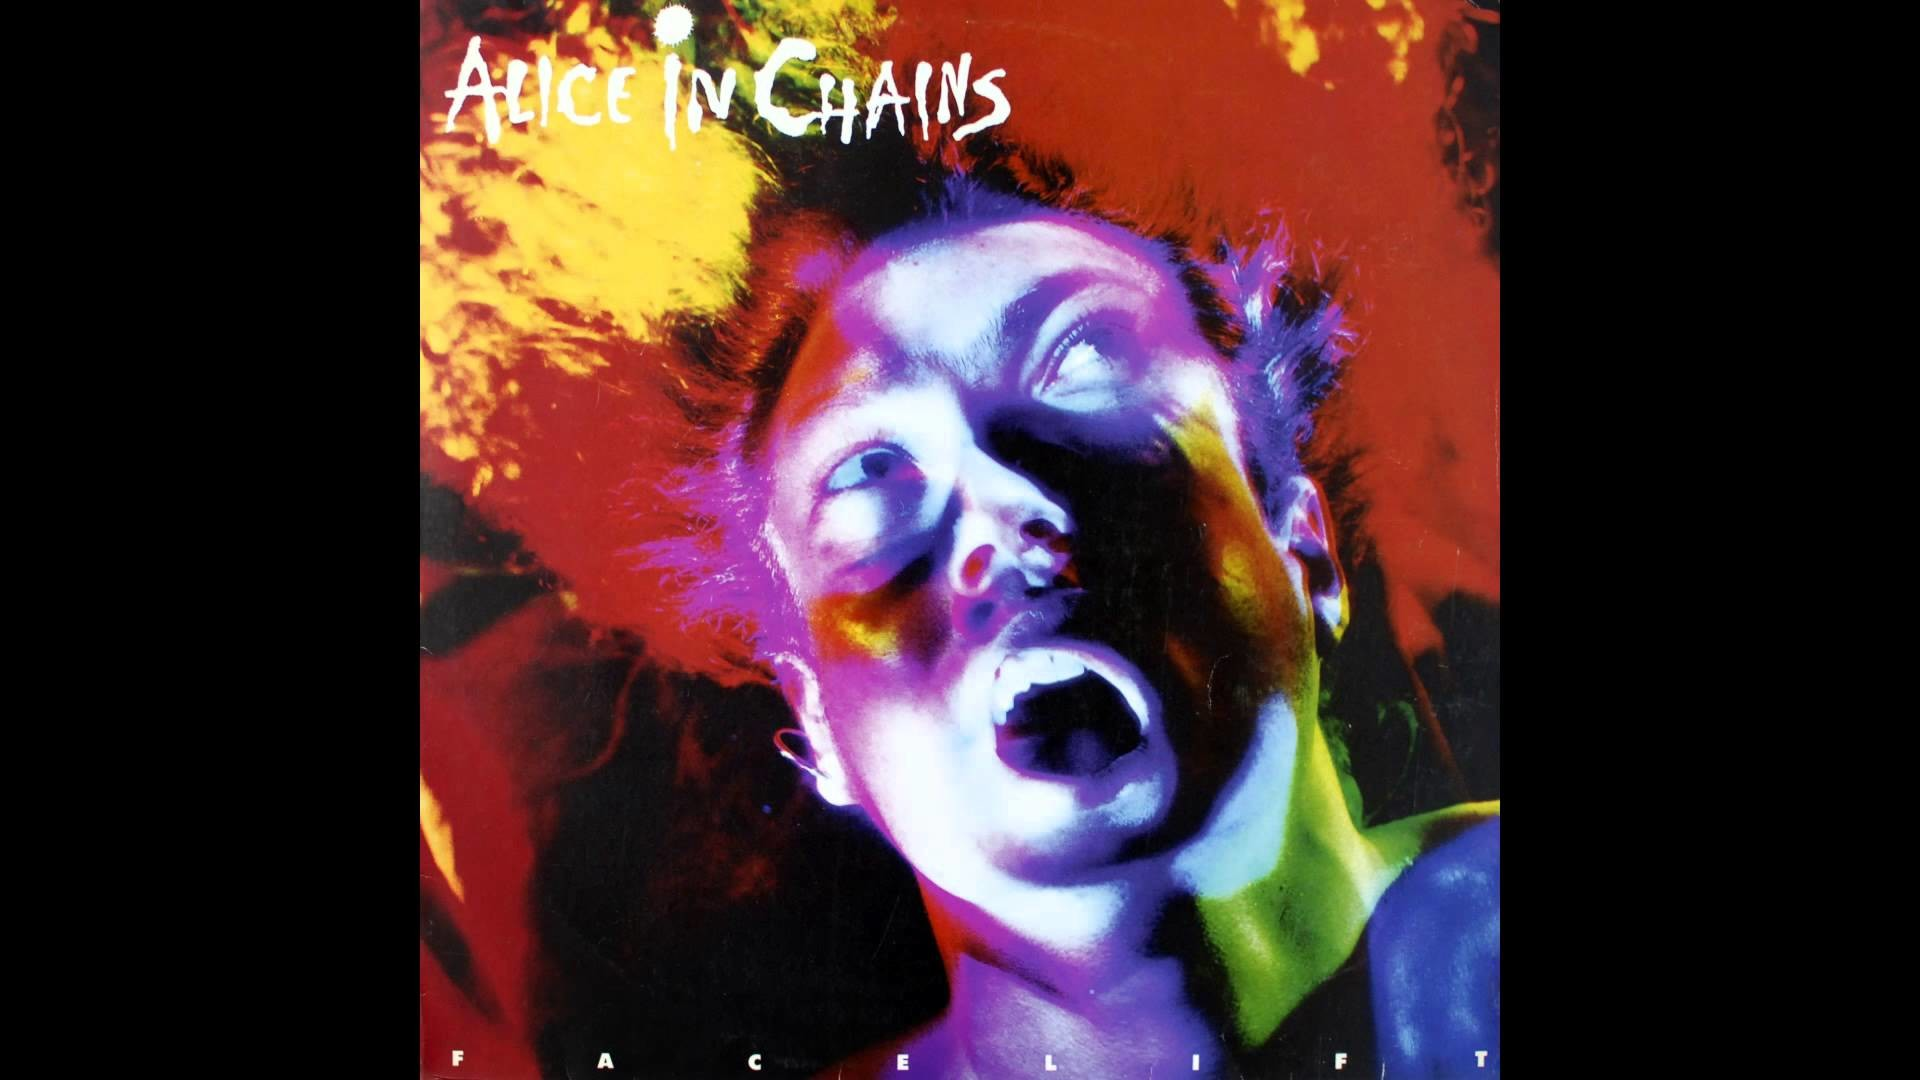 alice in chains wallpapers ·①